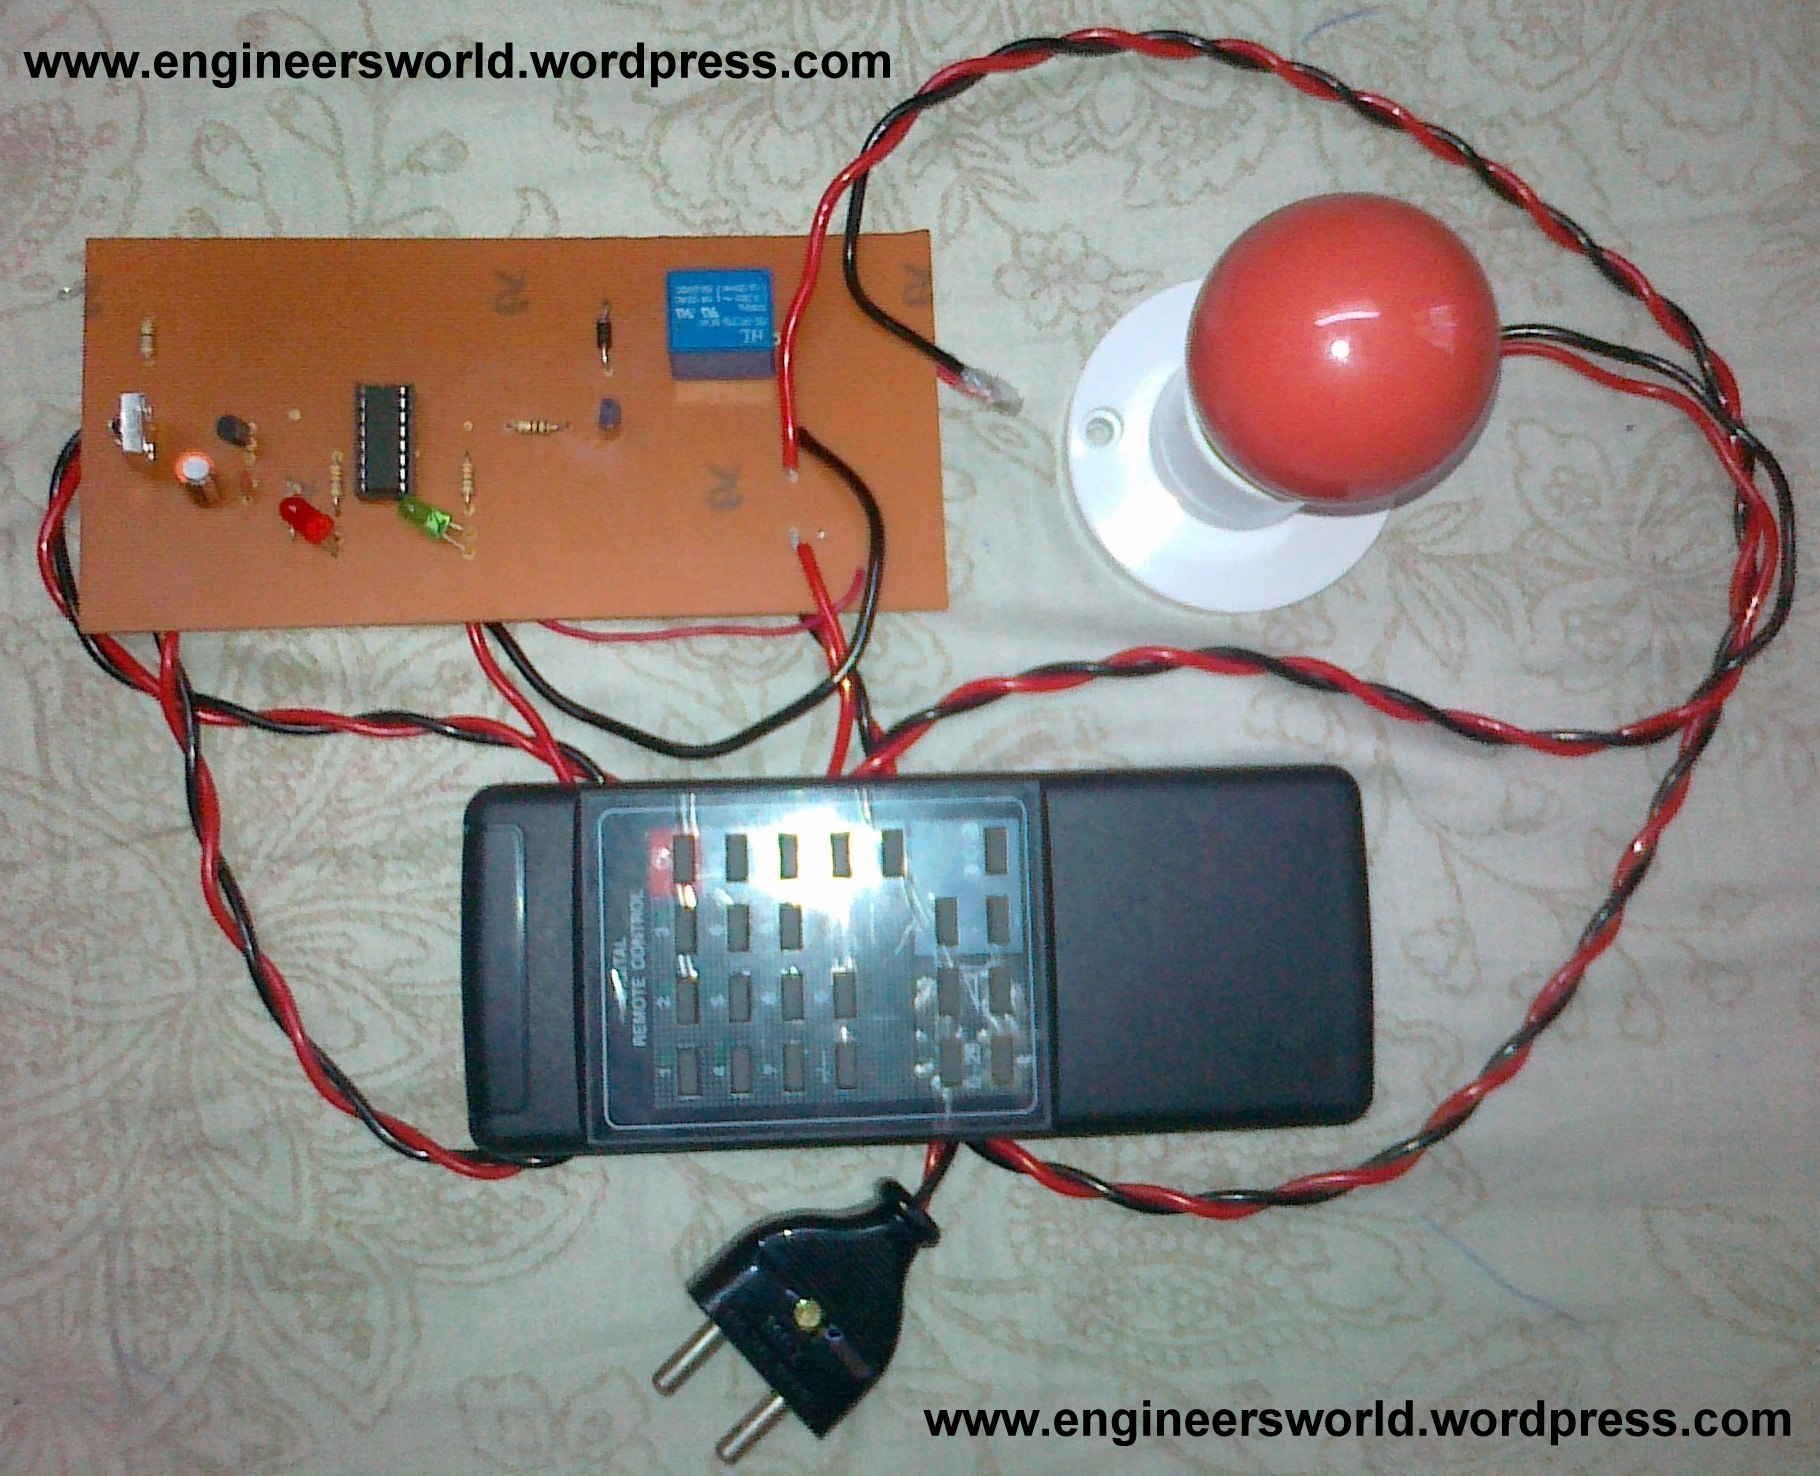 Projects Engineers World Circuits 8085 Blog Archive Power Factor Meter Circuit Controlling Home Appliances Through Infrared